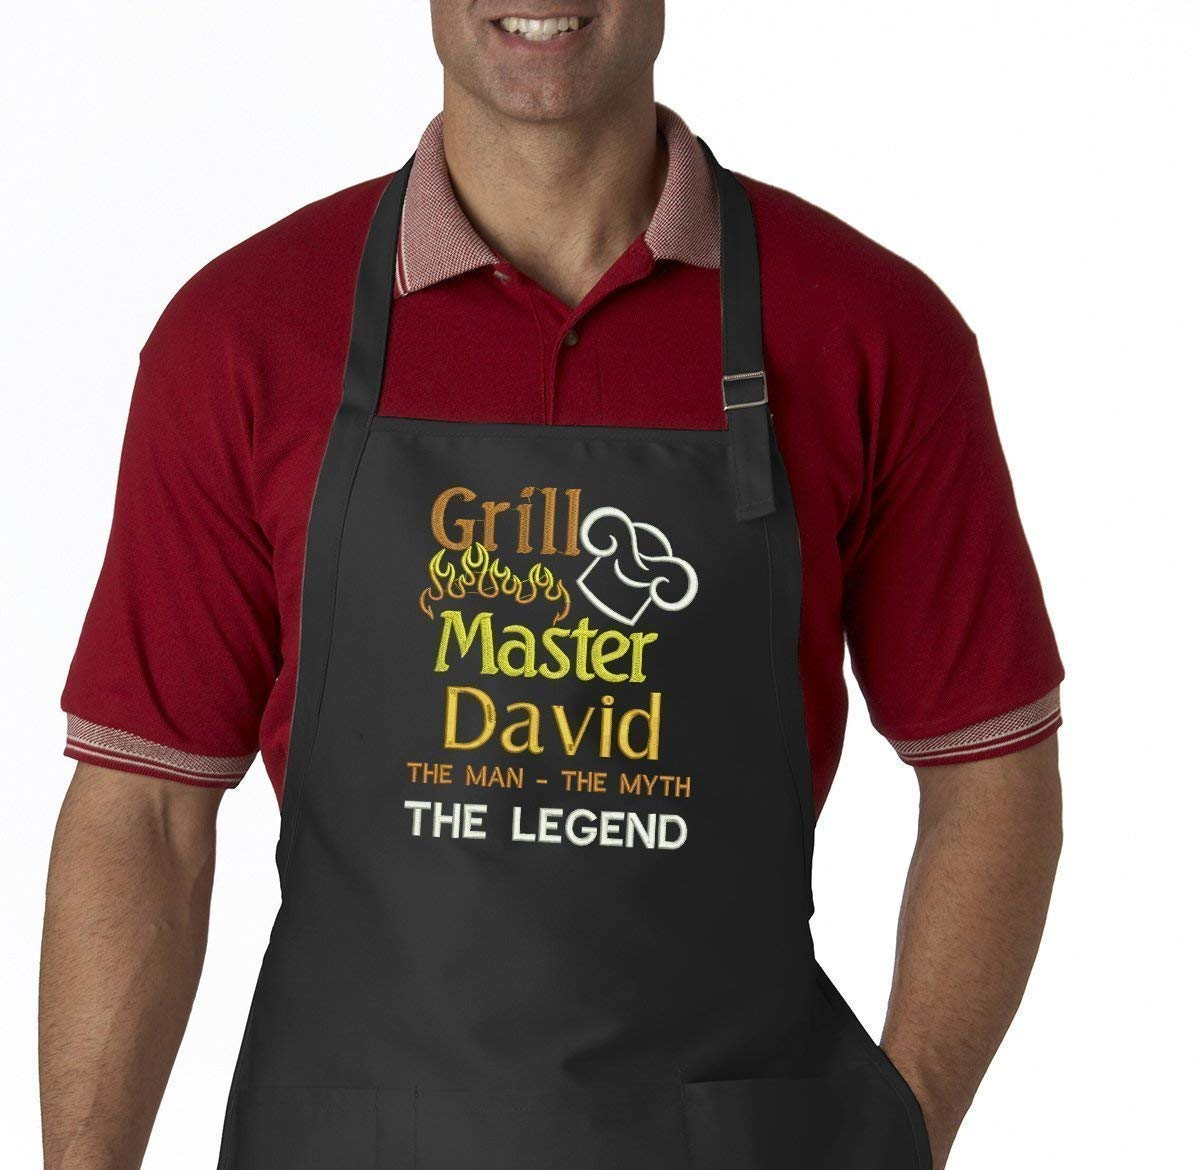 Grill Master The Man The Myth The Legend Personalized Men's Embroidered BBQ Apron by Simply Custom Life (Image #1)